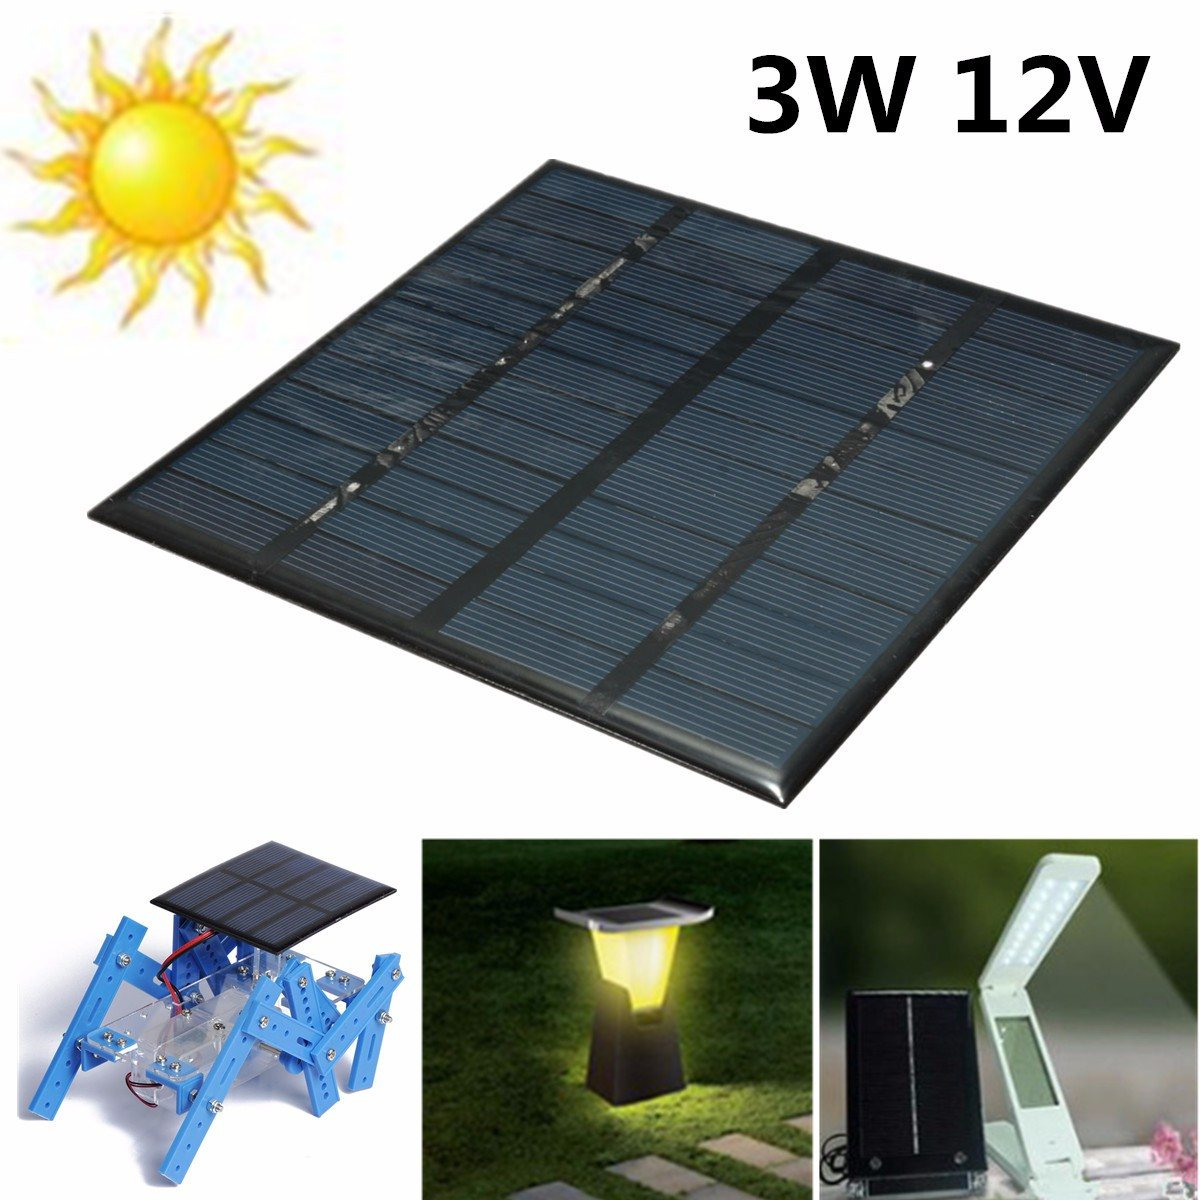 LEORY 3W 12V Solar Panel MINI DIY Battery Charger Power Bank Polycrystalline Silicon 145*145*2.5mm Solar Cell For System Supply